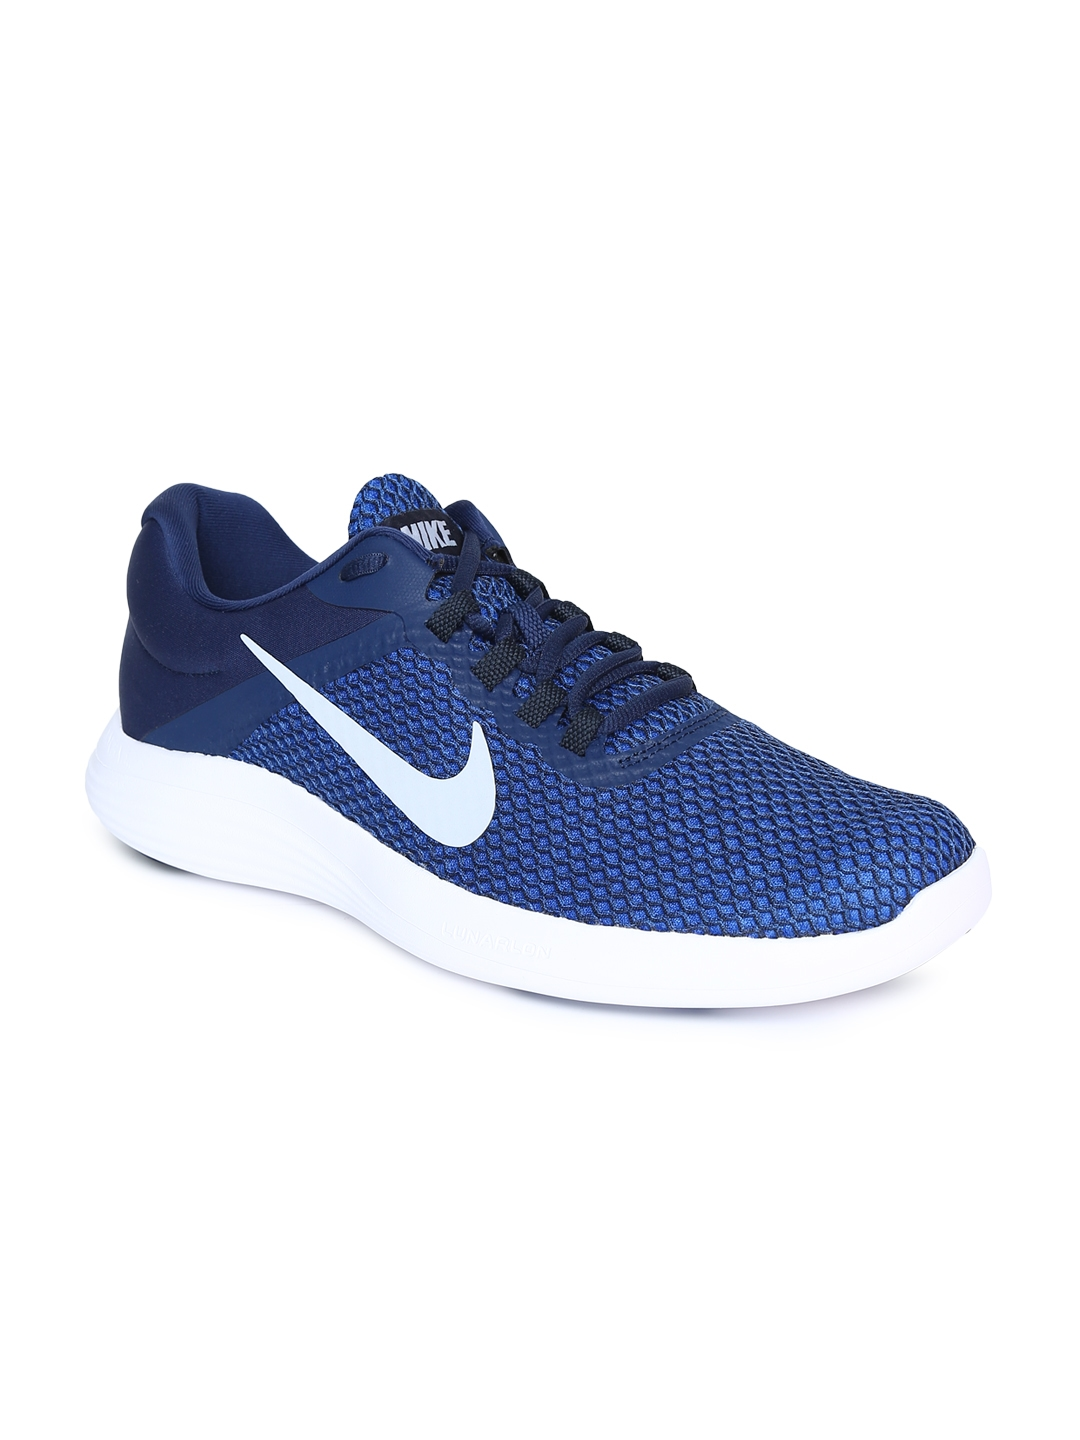 a1f7ed1bd64857 Buy Nike Men Blue Lunar Converge 2 Running Shoes - Sports Shoes for ...